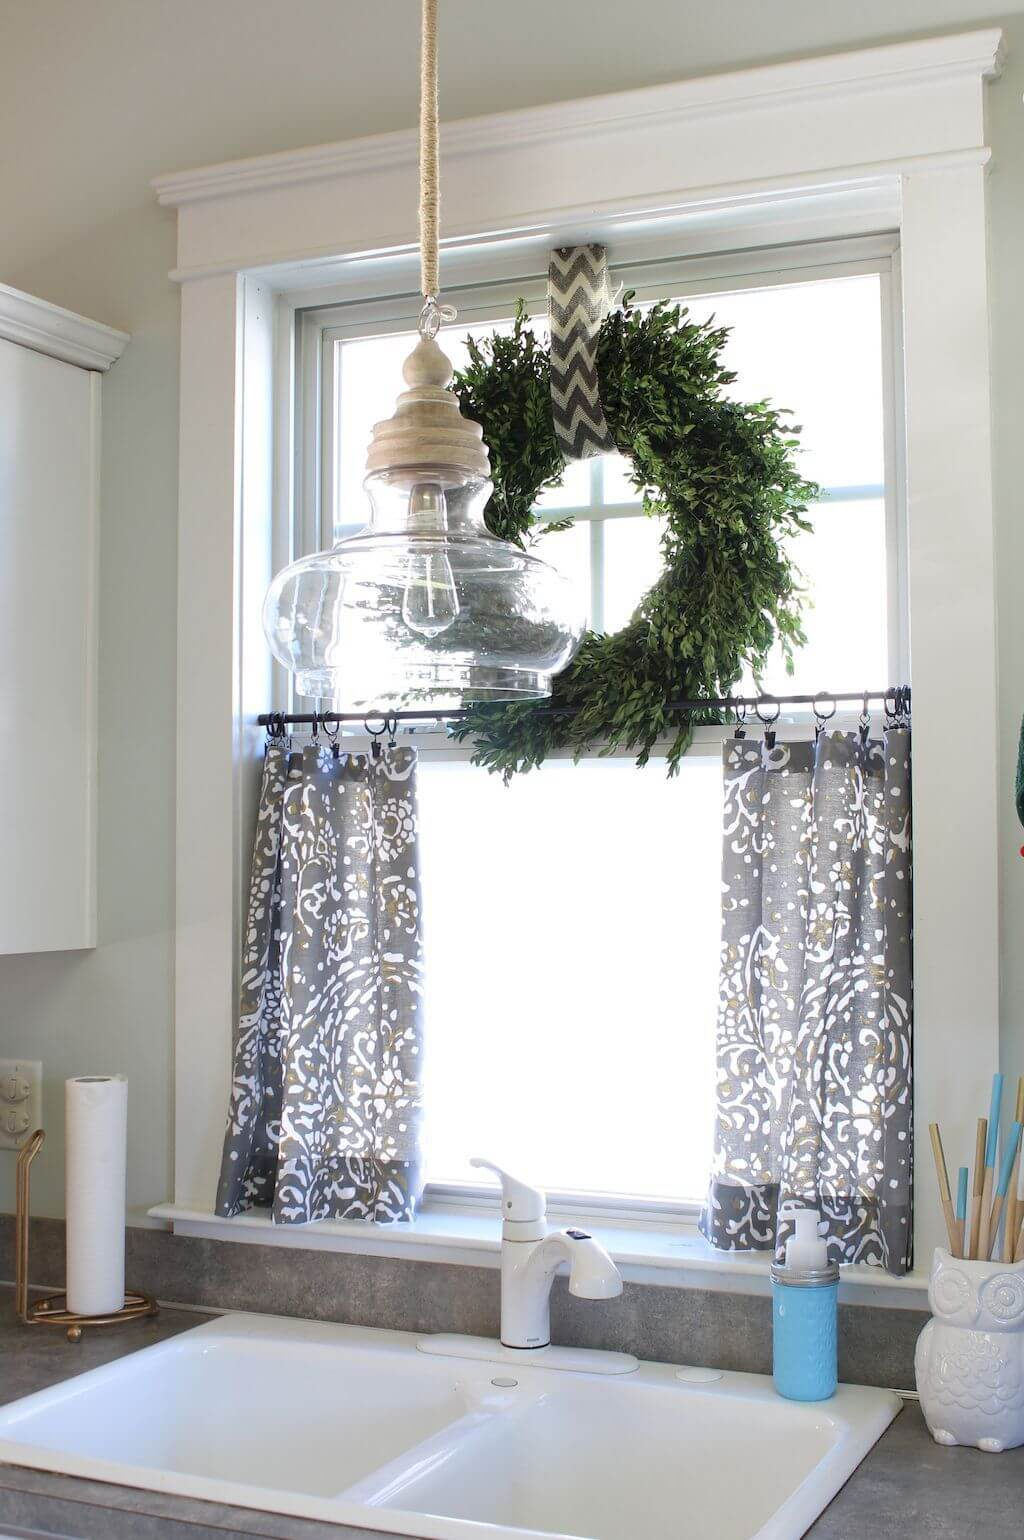 Dove gray café curtains and a wreath